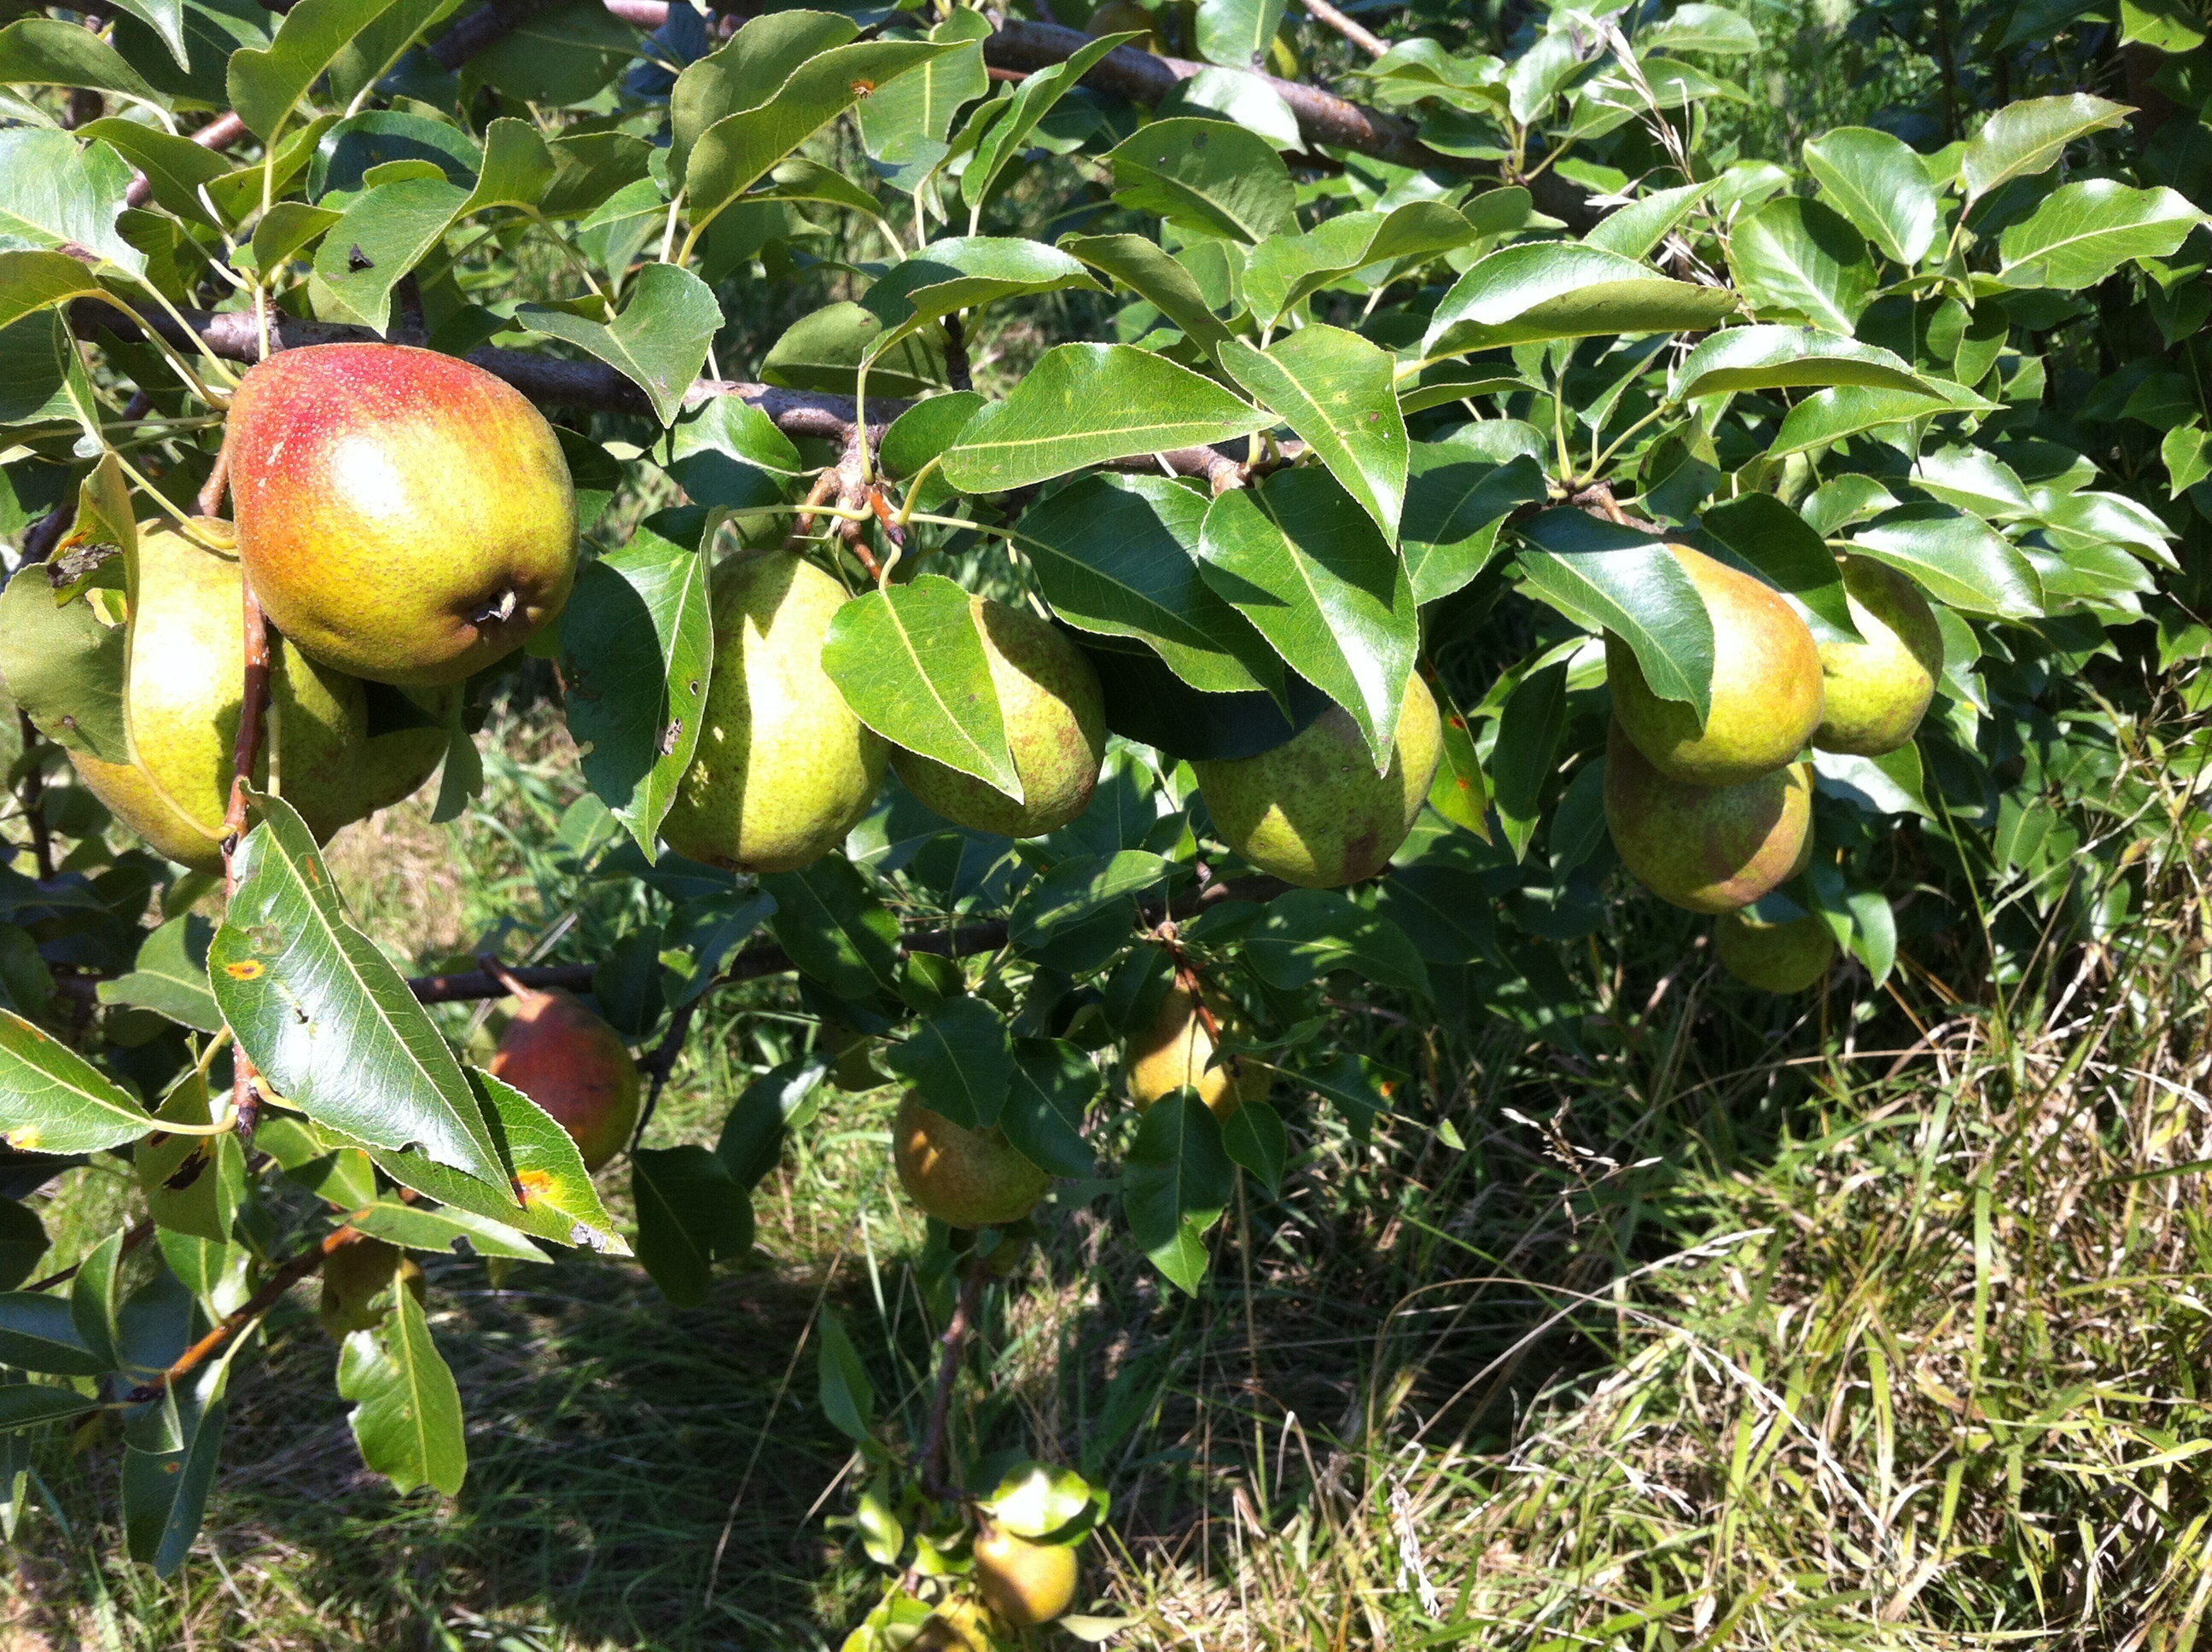 And young asian pear tree disease anatuer